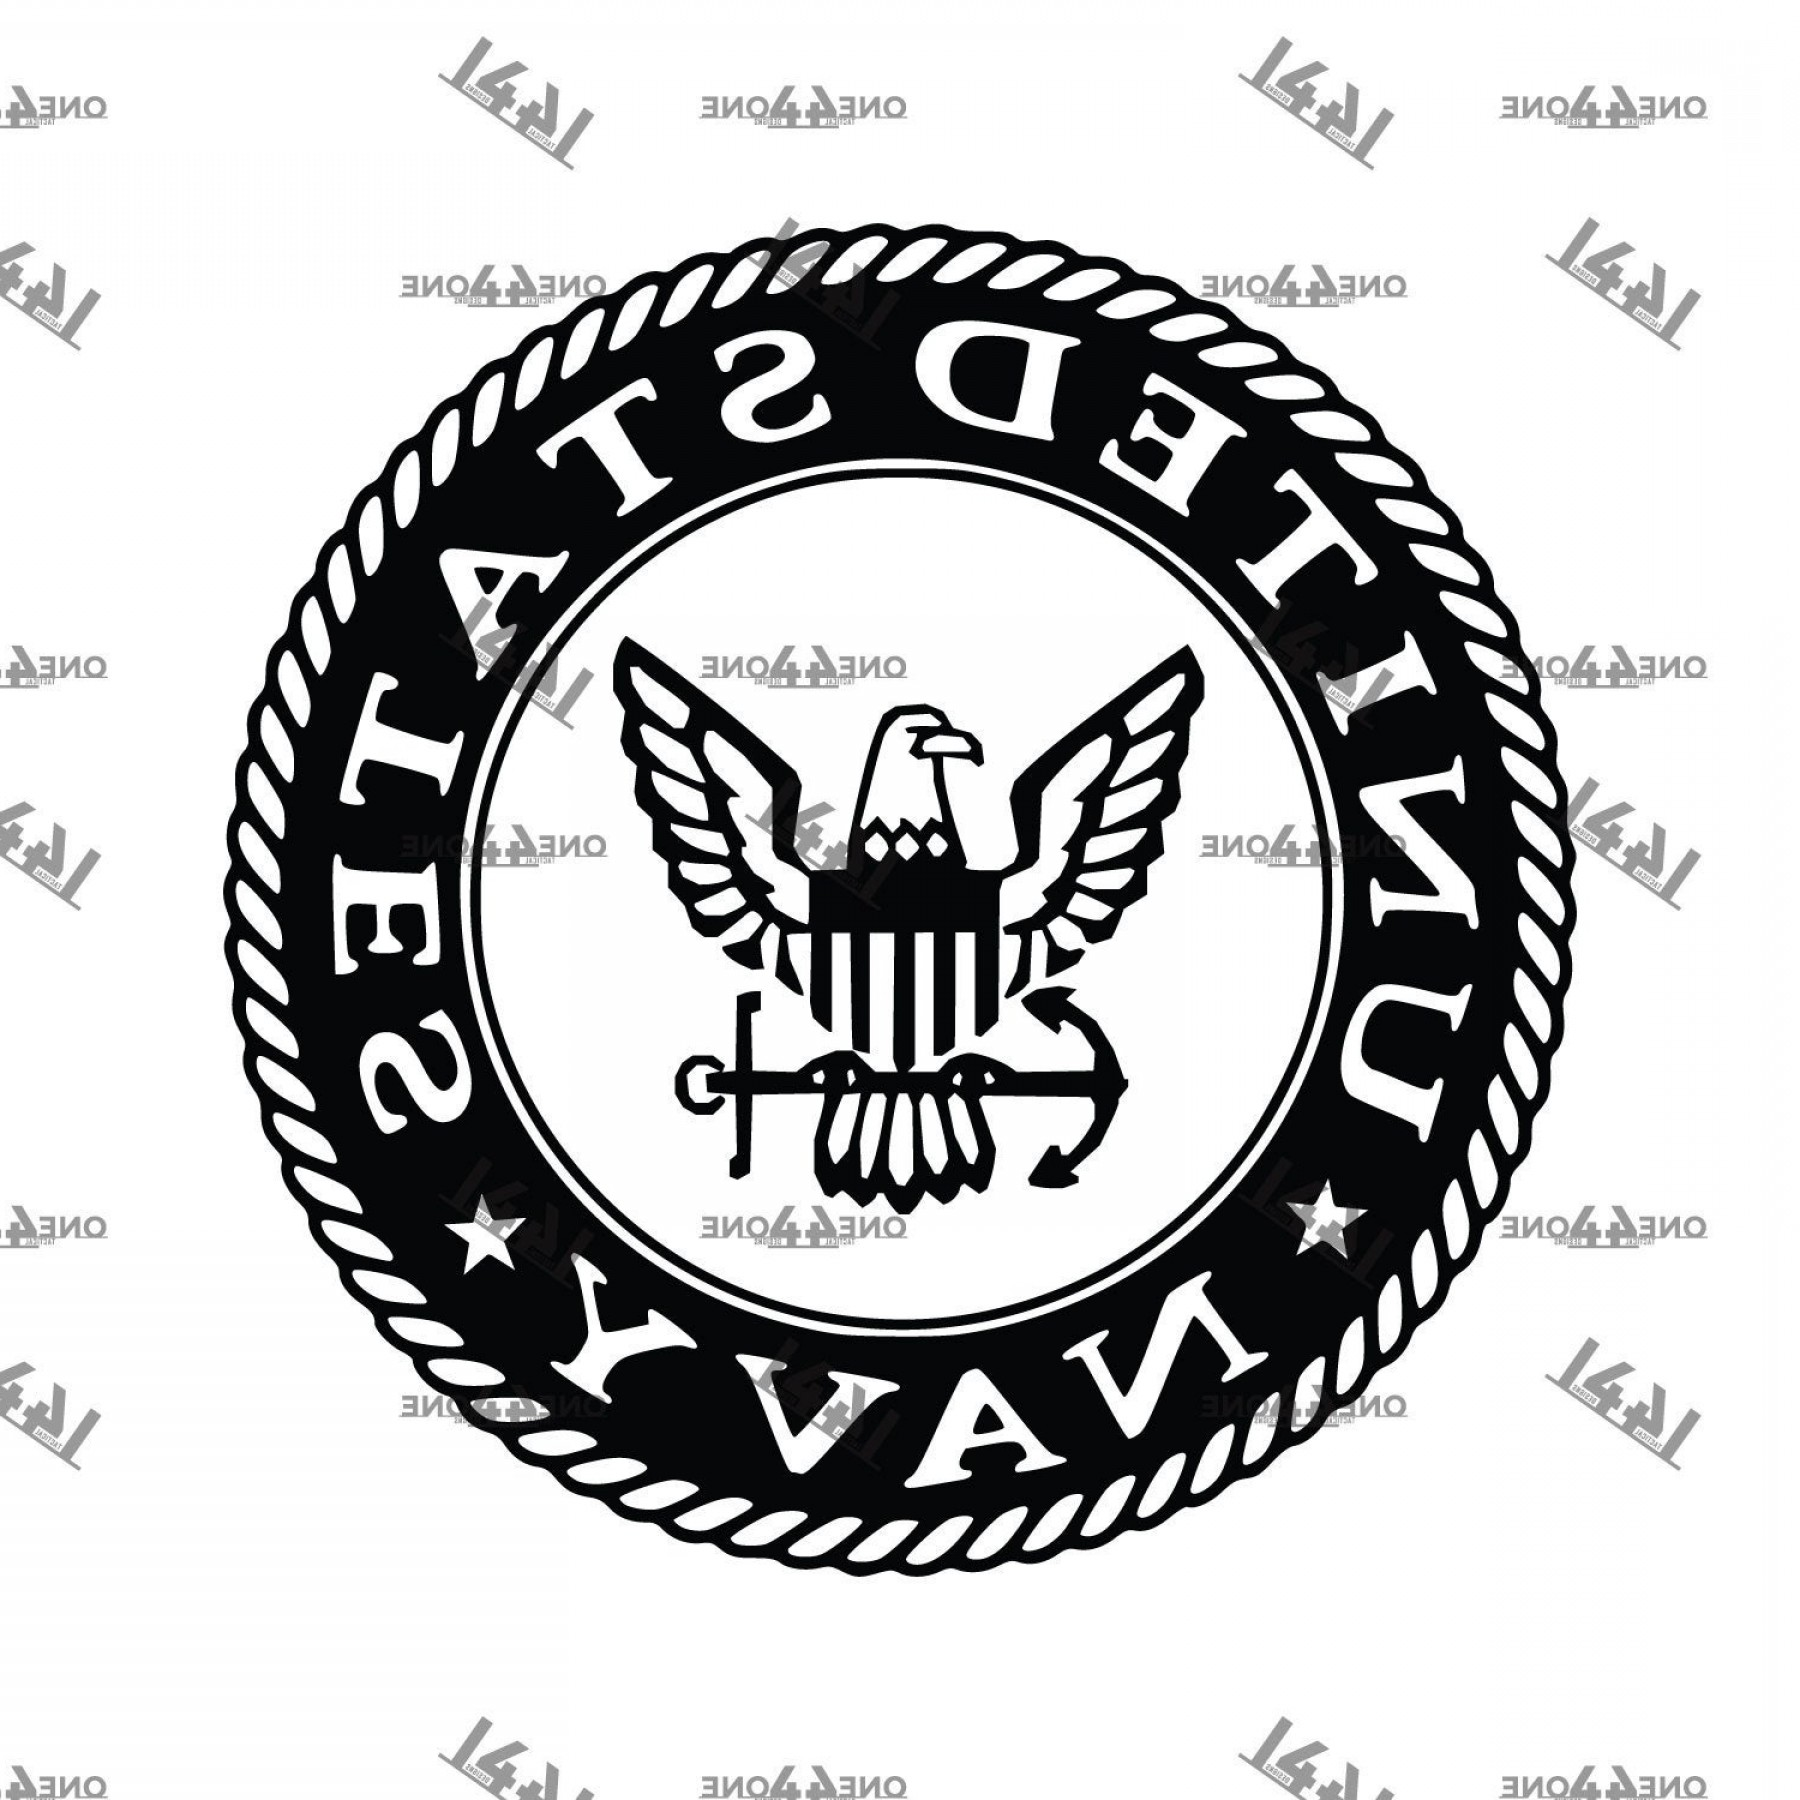 Us Navy Svg Navy Cut File Cutting File.